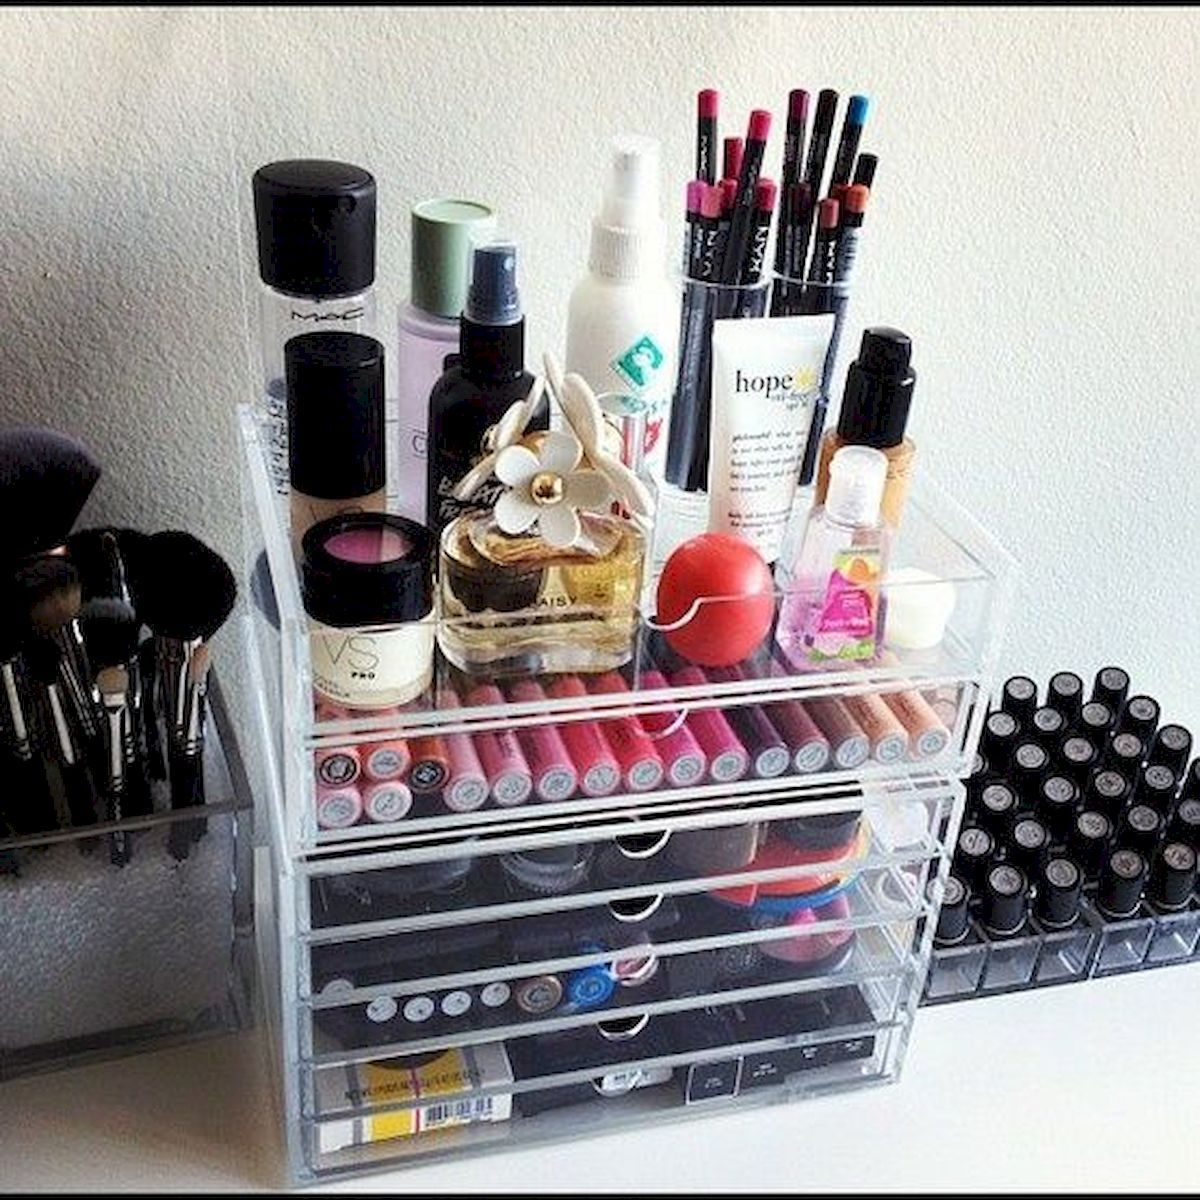 50+ Cool Makeup Storage Ideas That Will Save Your Time images